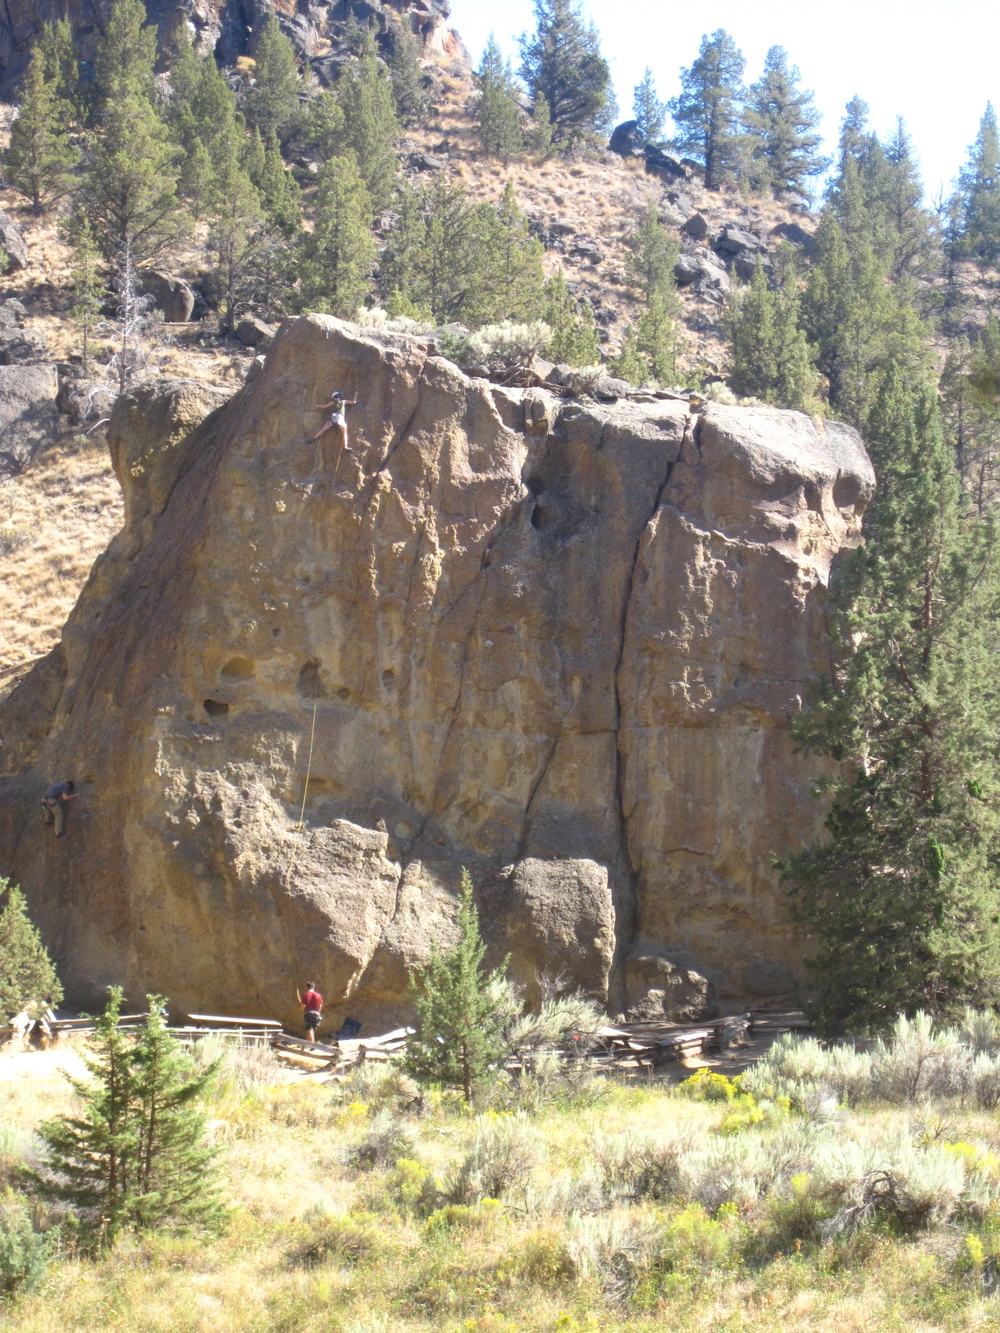 My first outdoor 5.10 climb. Smith Rock, OR.  photo: Lucas Posada